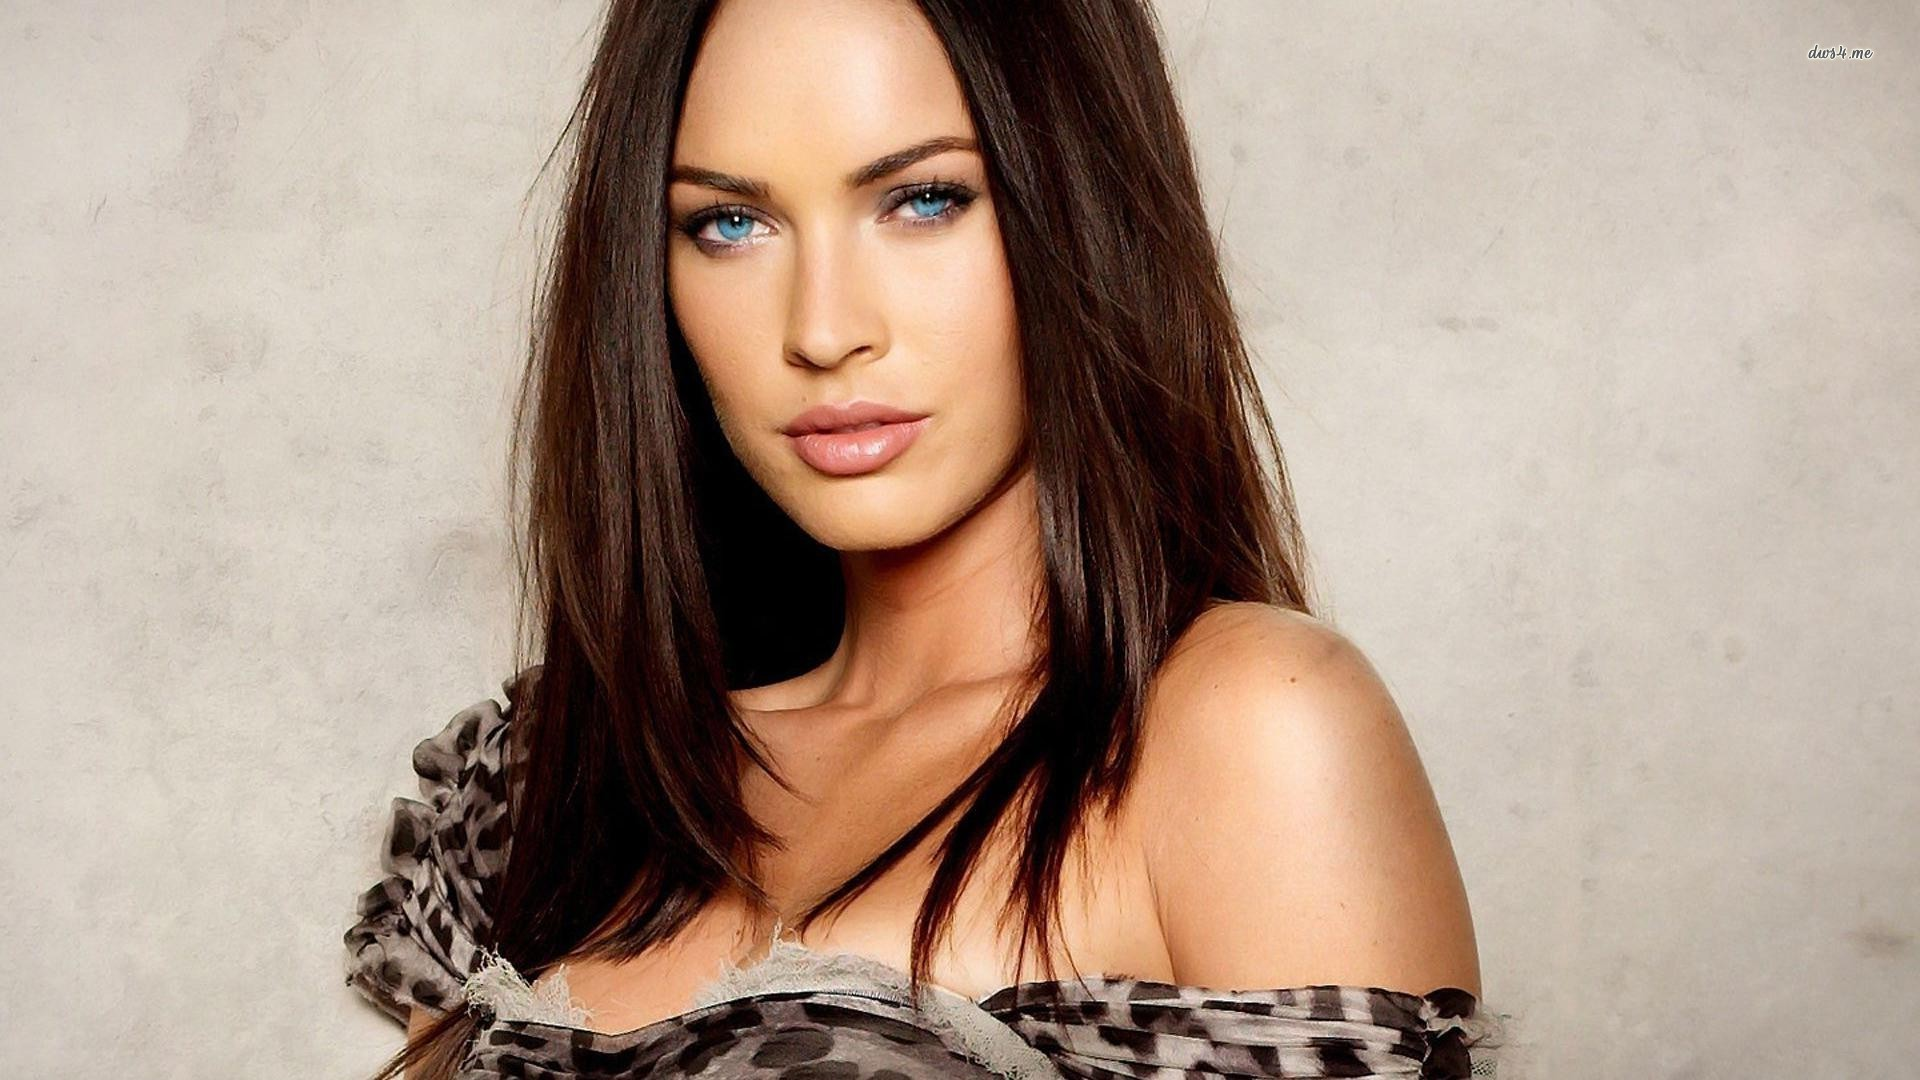 Megan Fox wallpaper 1366x768 Megan Fox wallpaper 1680x1050 Megan Fox 1920x1080